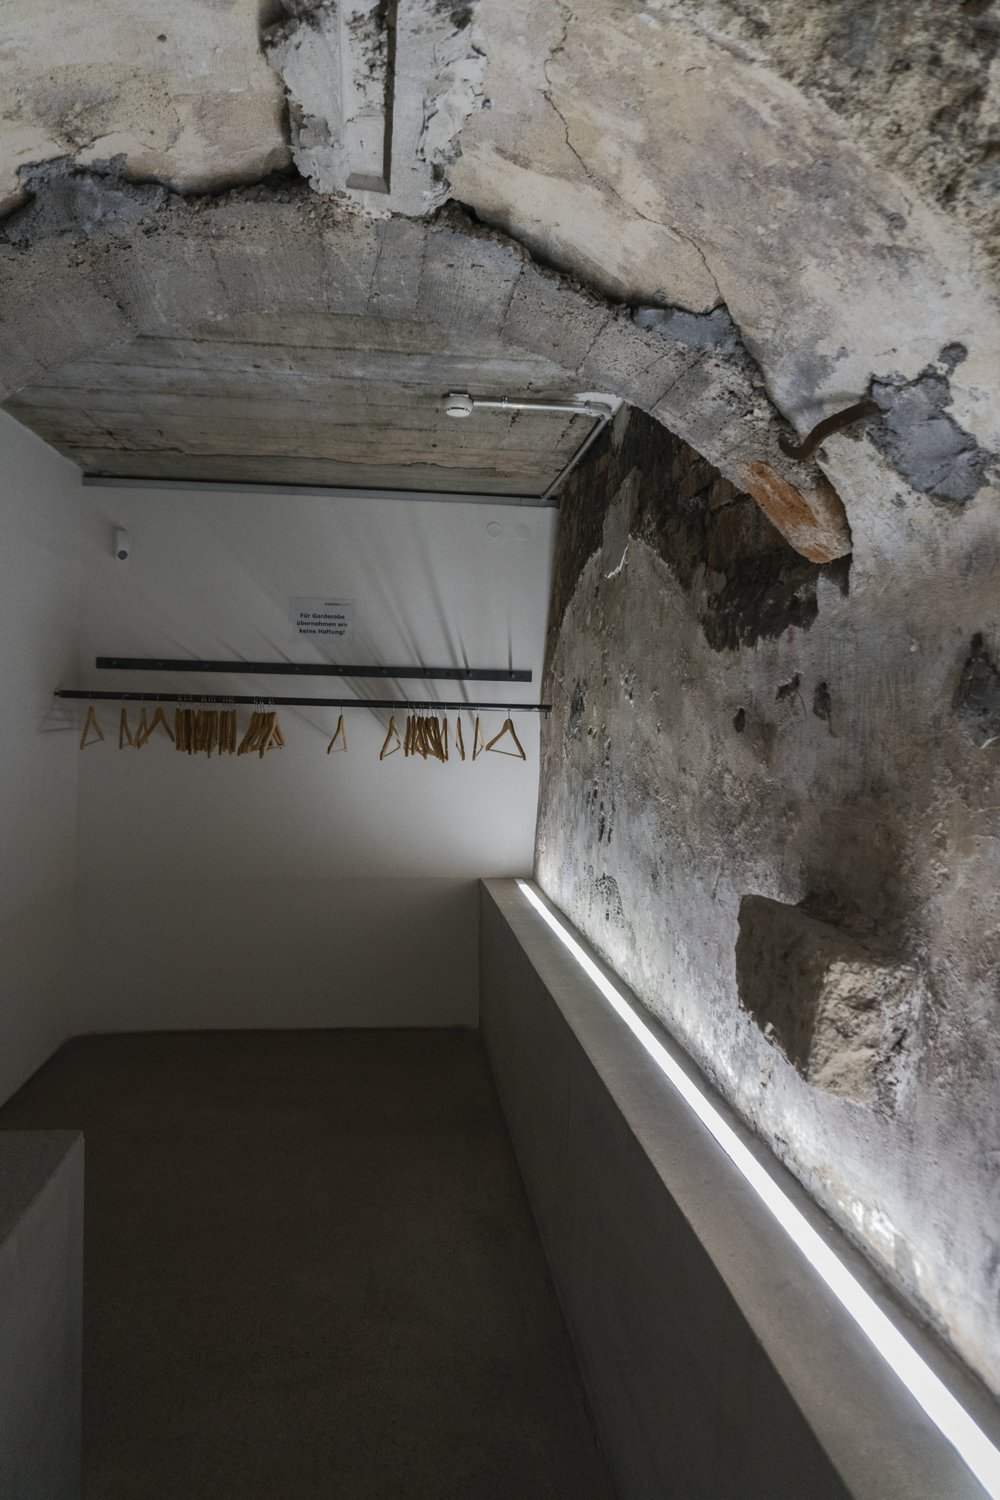 Raw materials, naked walls: the foundations of the museum focus on the essential and are limited to the minimum necessary to keep its spirit free of unnecessary overlays and additions. A strong commitment and a clear willingness to get back to the very core and original roots of the building. To bare, restore and reveal its original soul.